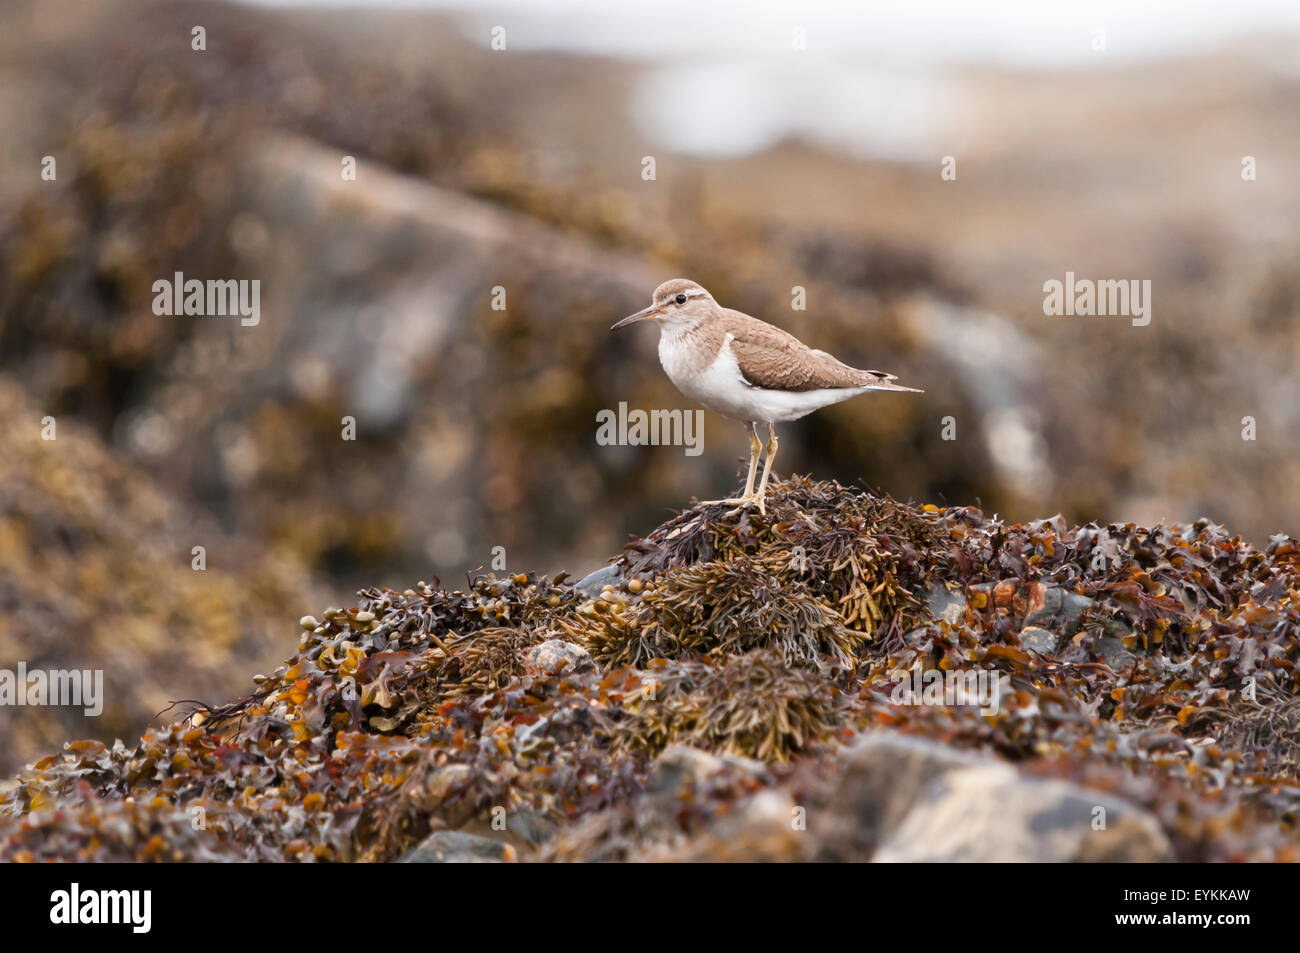 A Common Sandpiper, Actitis hypoleucos, watching me. - Stock Image